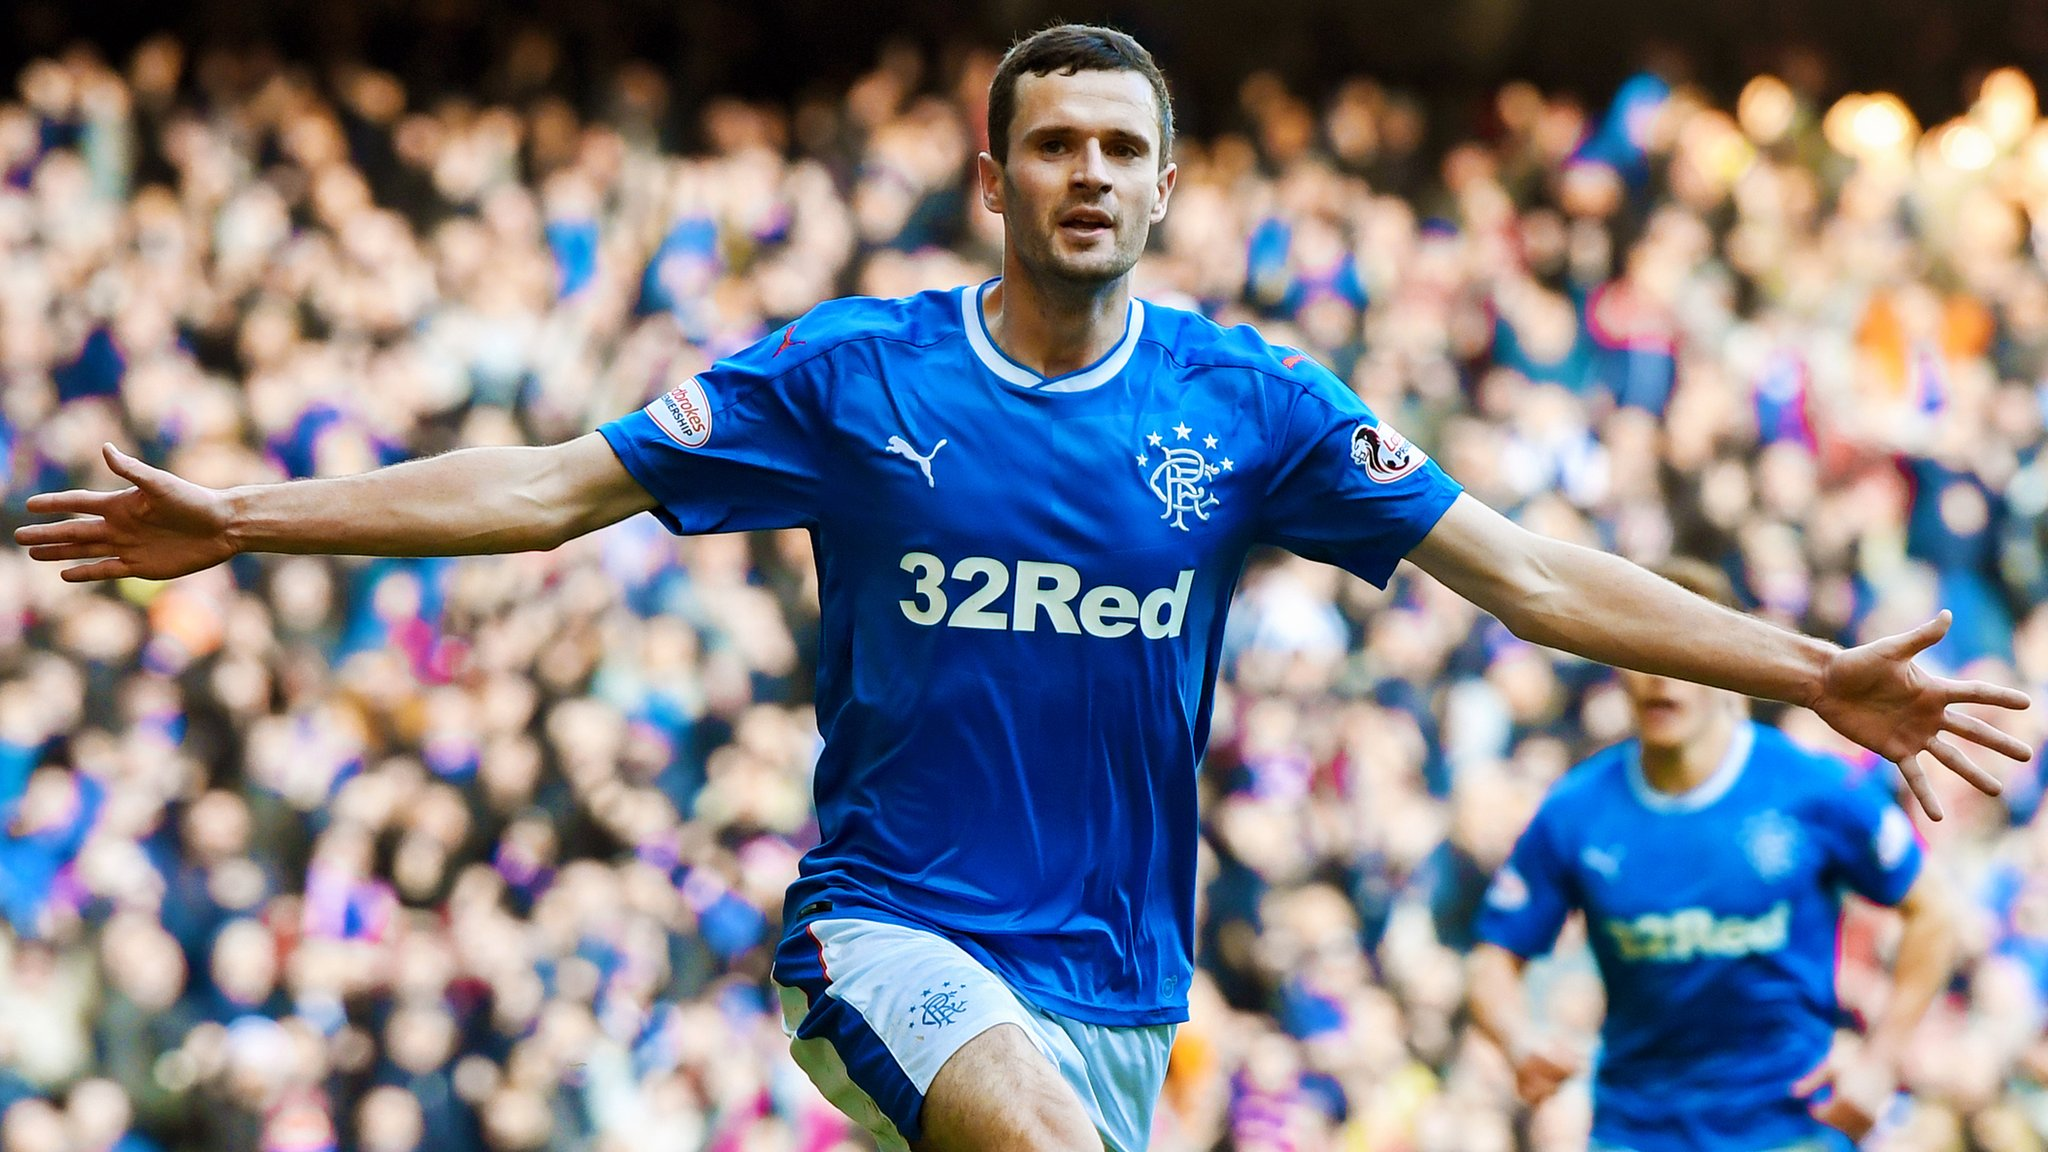 Rangers narrow gap on Celtic with win over Hearts